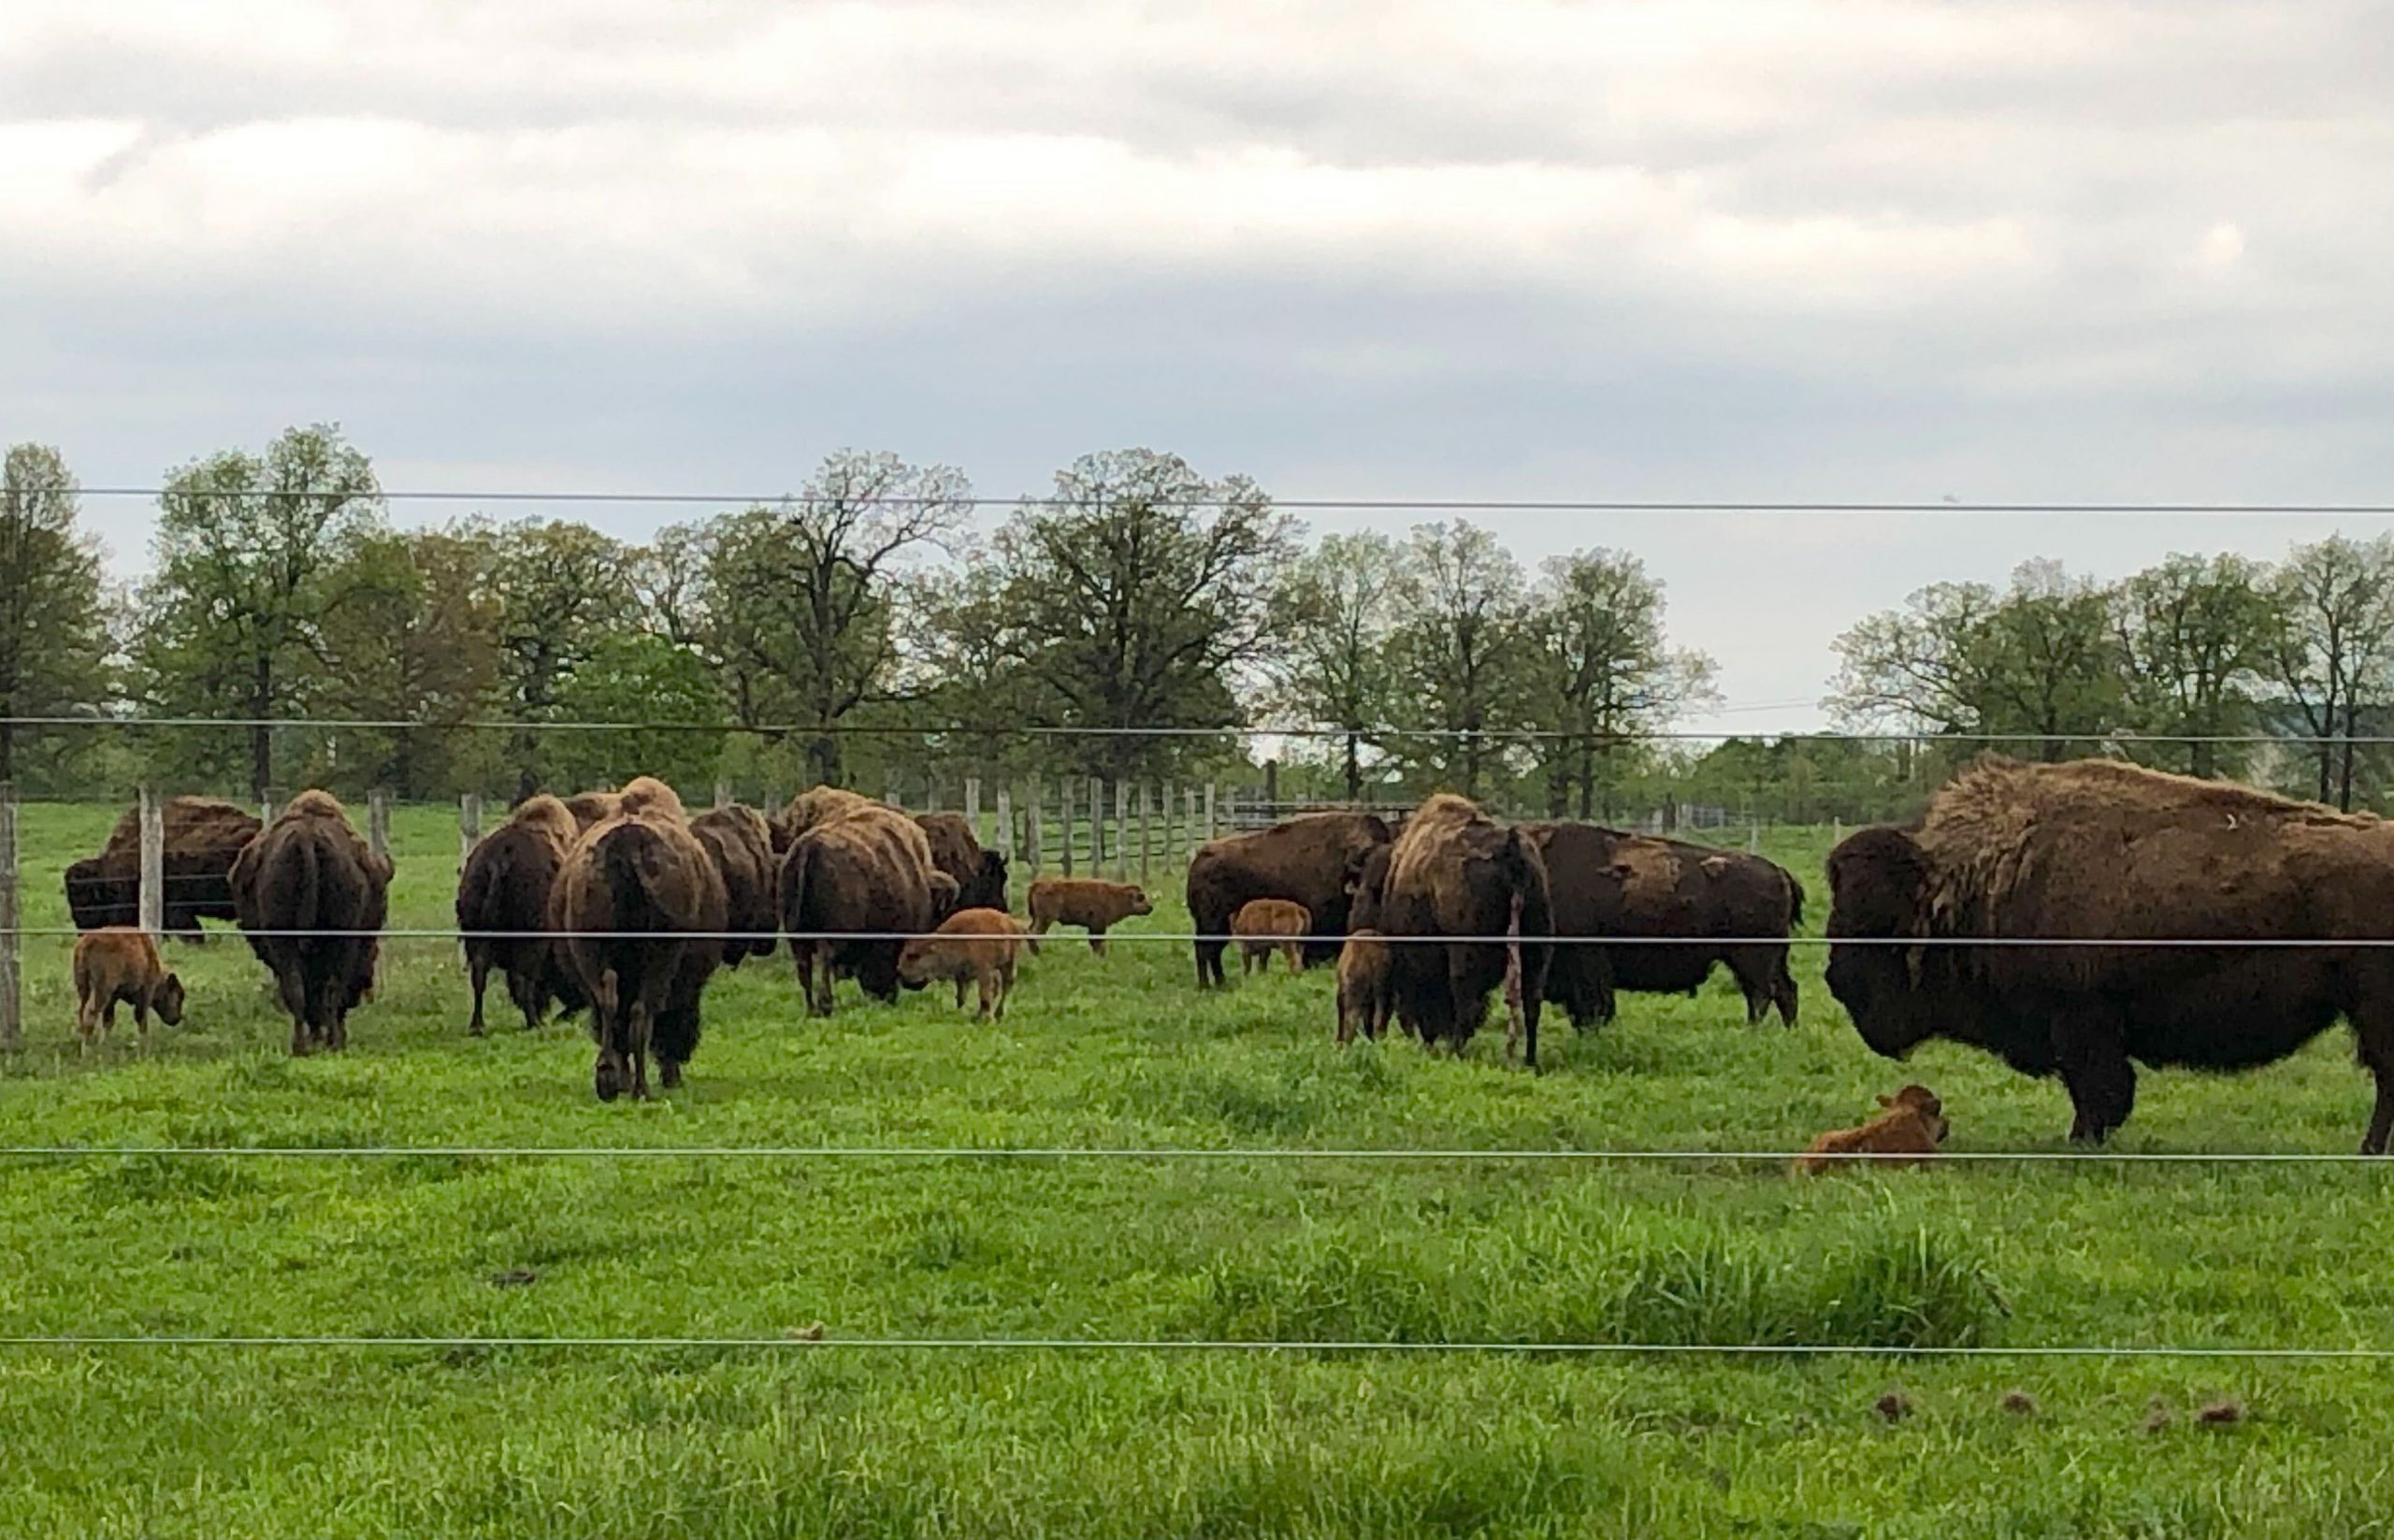 It's a beautiful day for bison. nature, wildlife, animal, mammal, bison Photo: Maria Martinez Casales